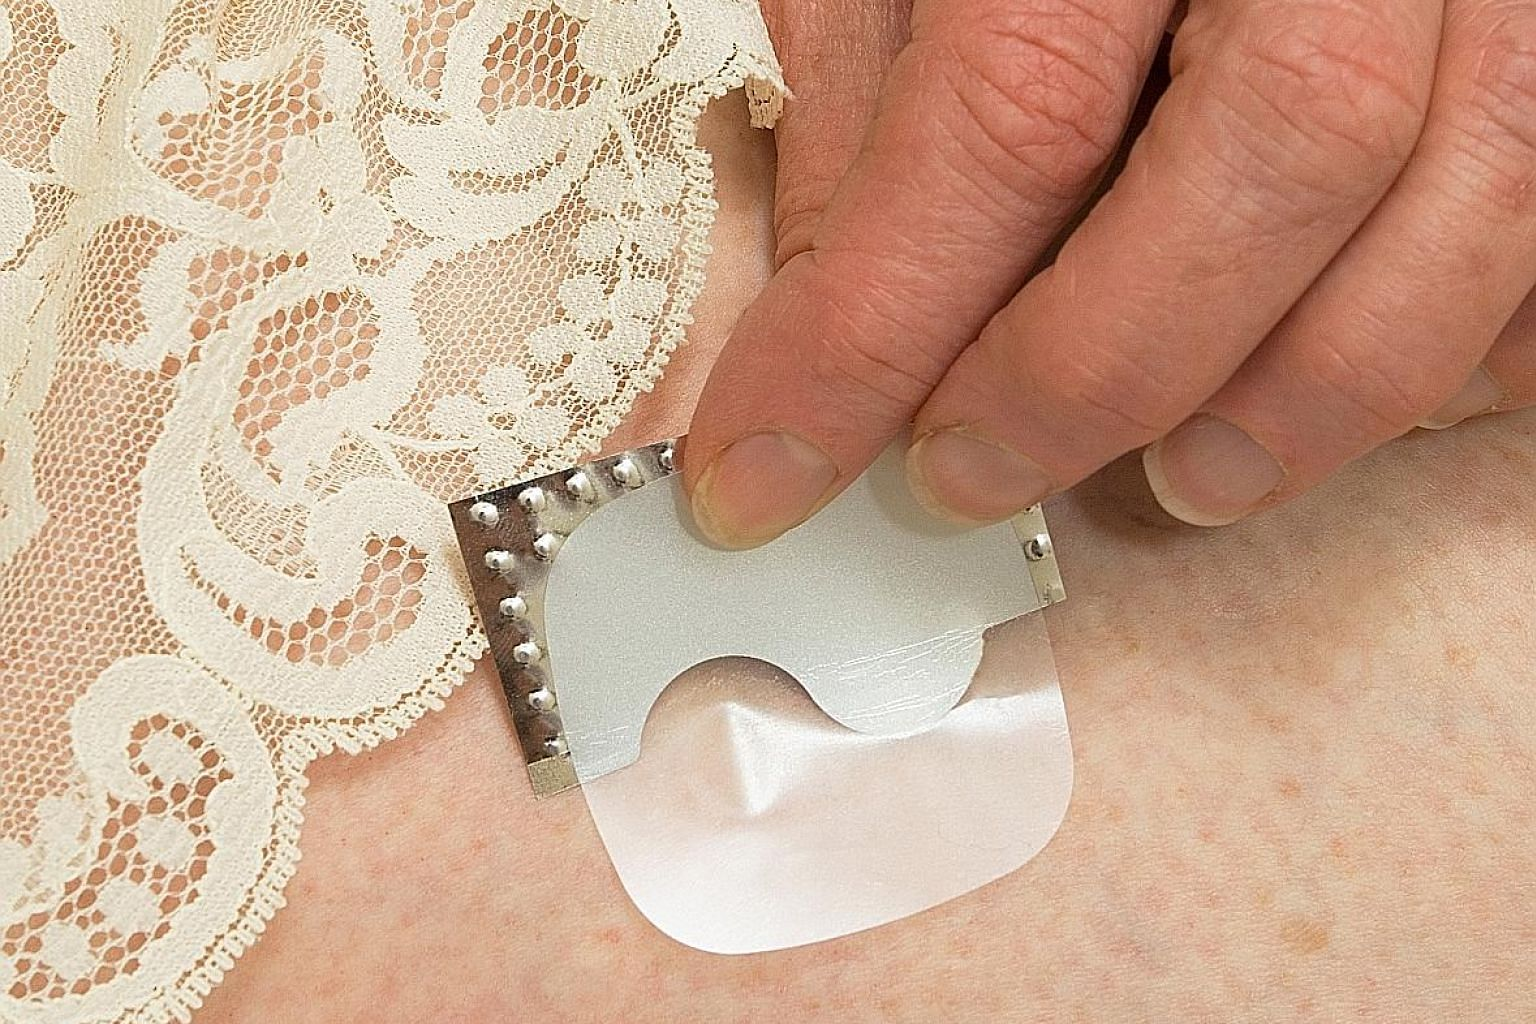 An HRT patch being applied. Hormone replacement therapy can help with hot flushes and sleep disturbance, and it also keeps the bones strong.